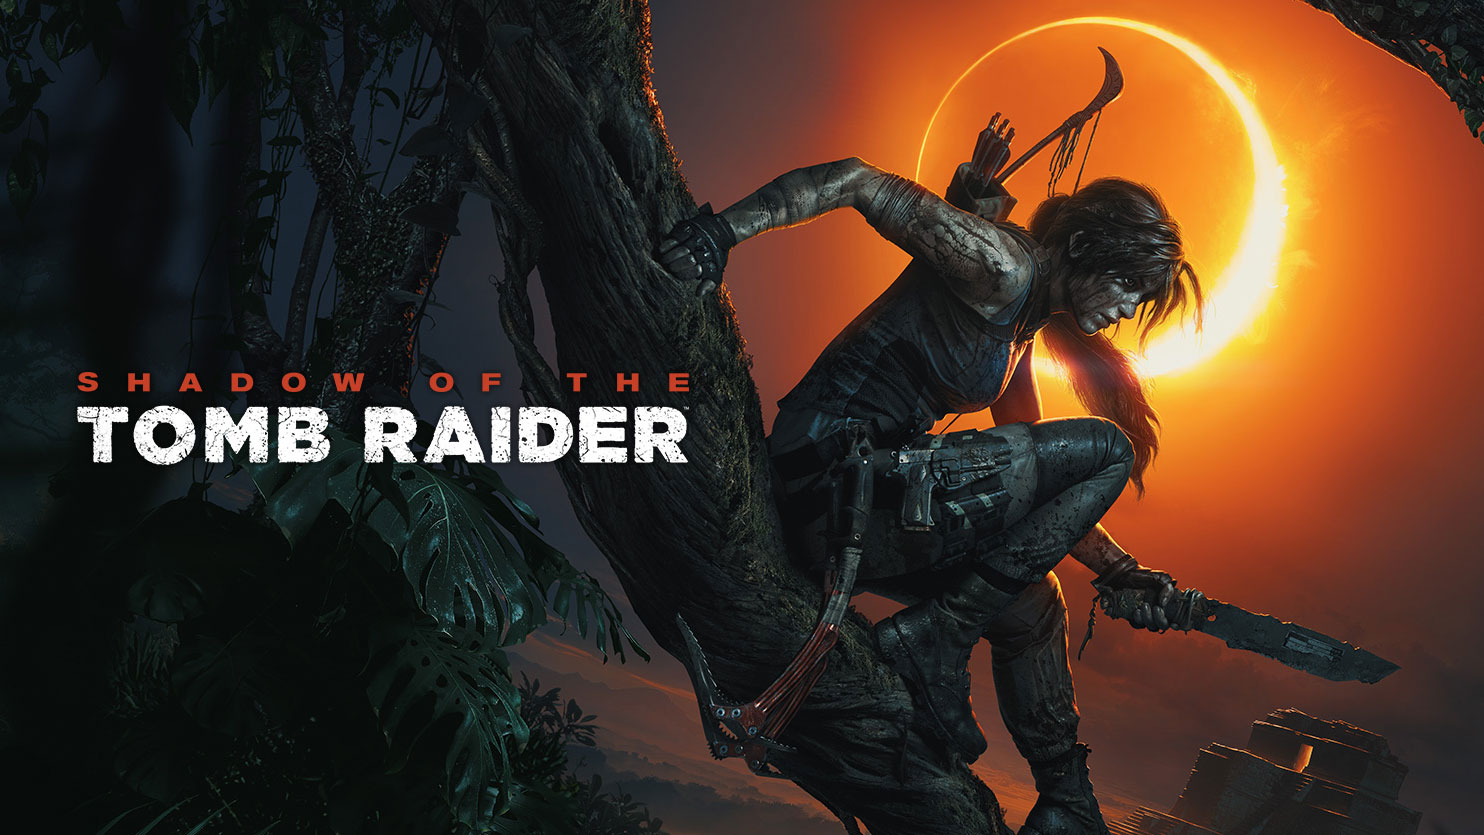 Shadow Of The Tomb Raider Benchmarks Of The Rtx 2080 Ti 2080